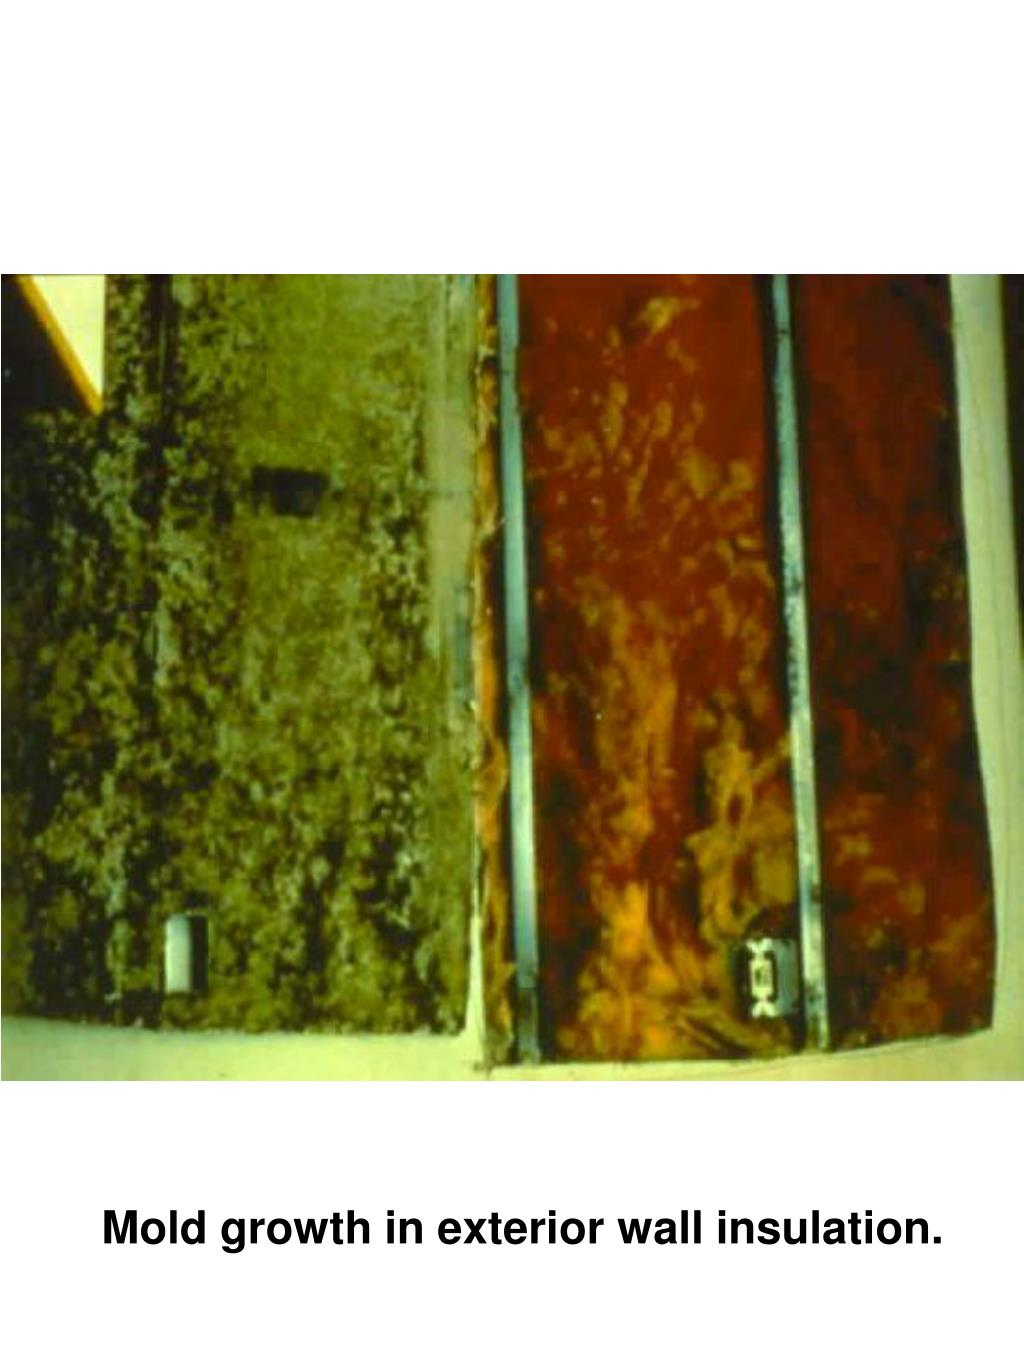 Mold growth in exterior wall insulation.